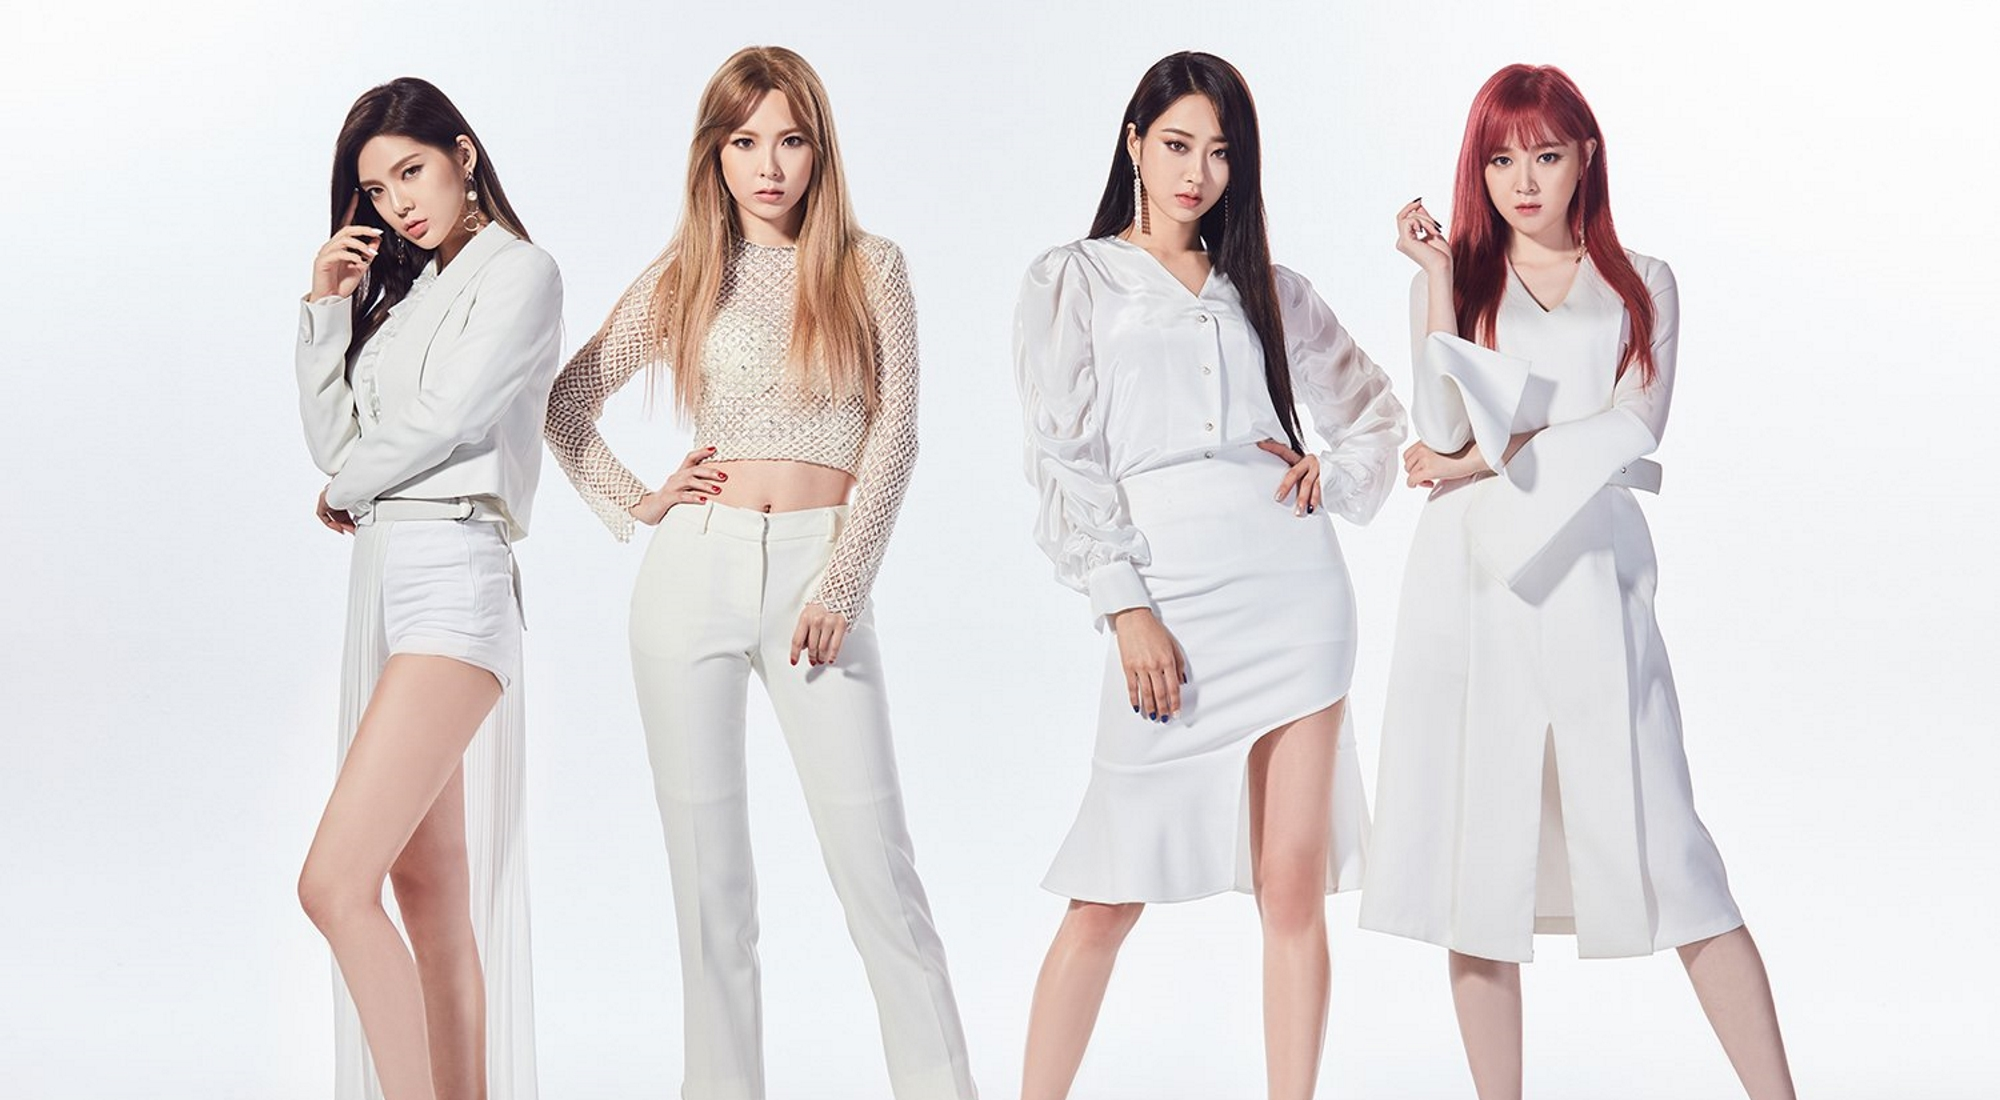 9MUSES Group Profile